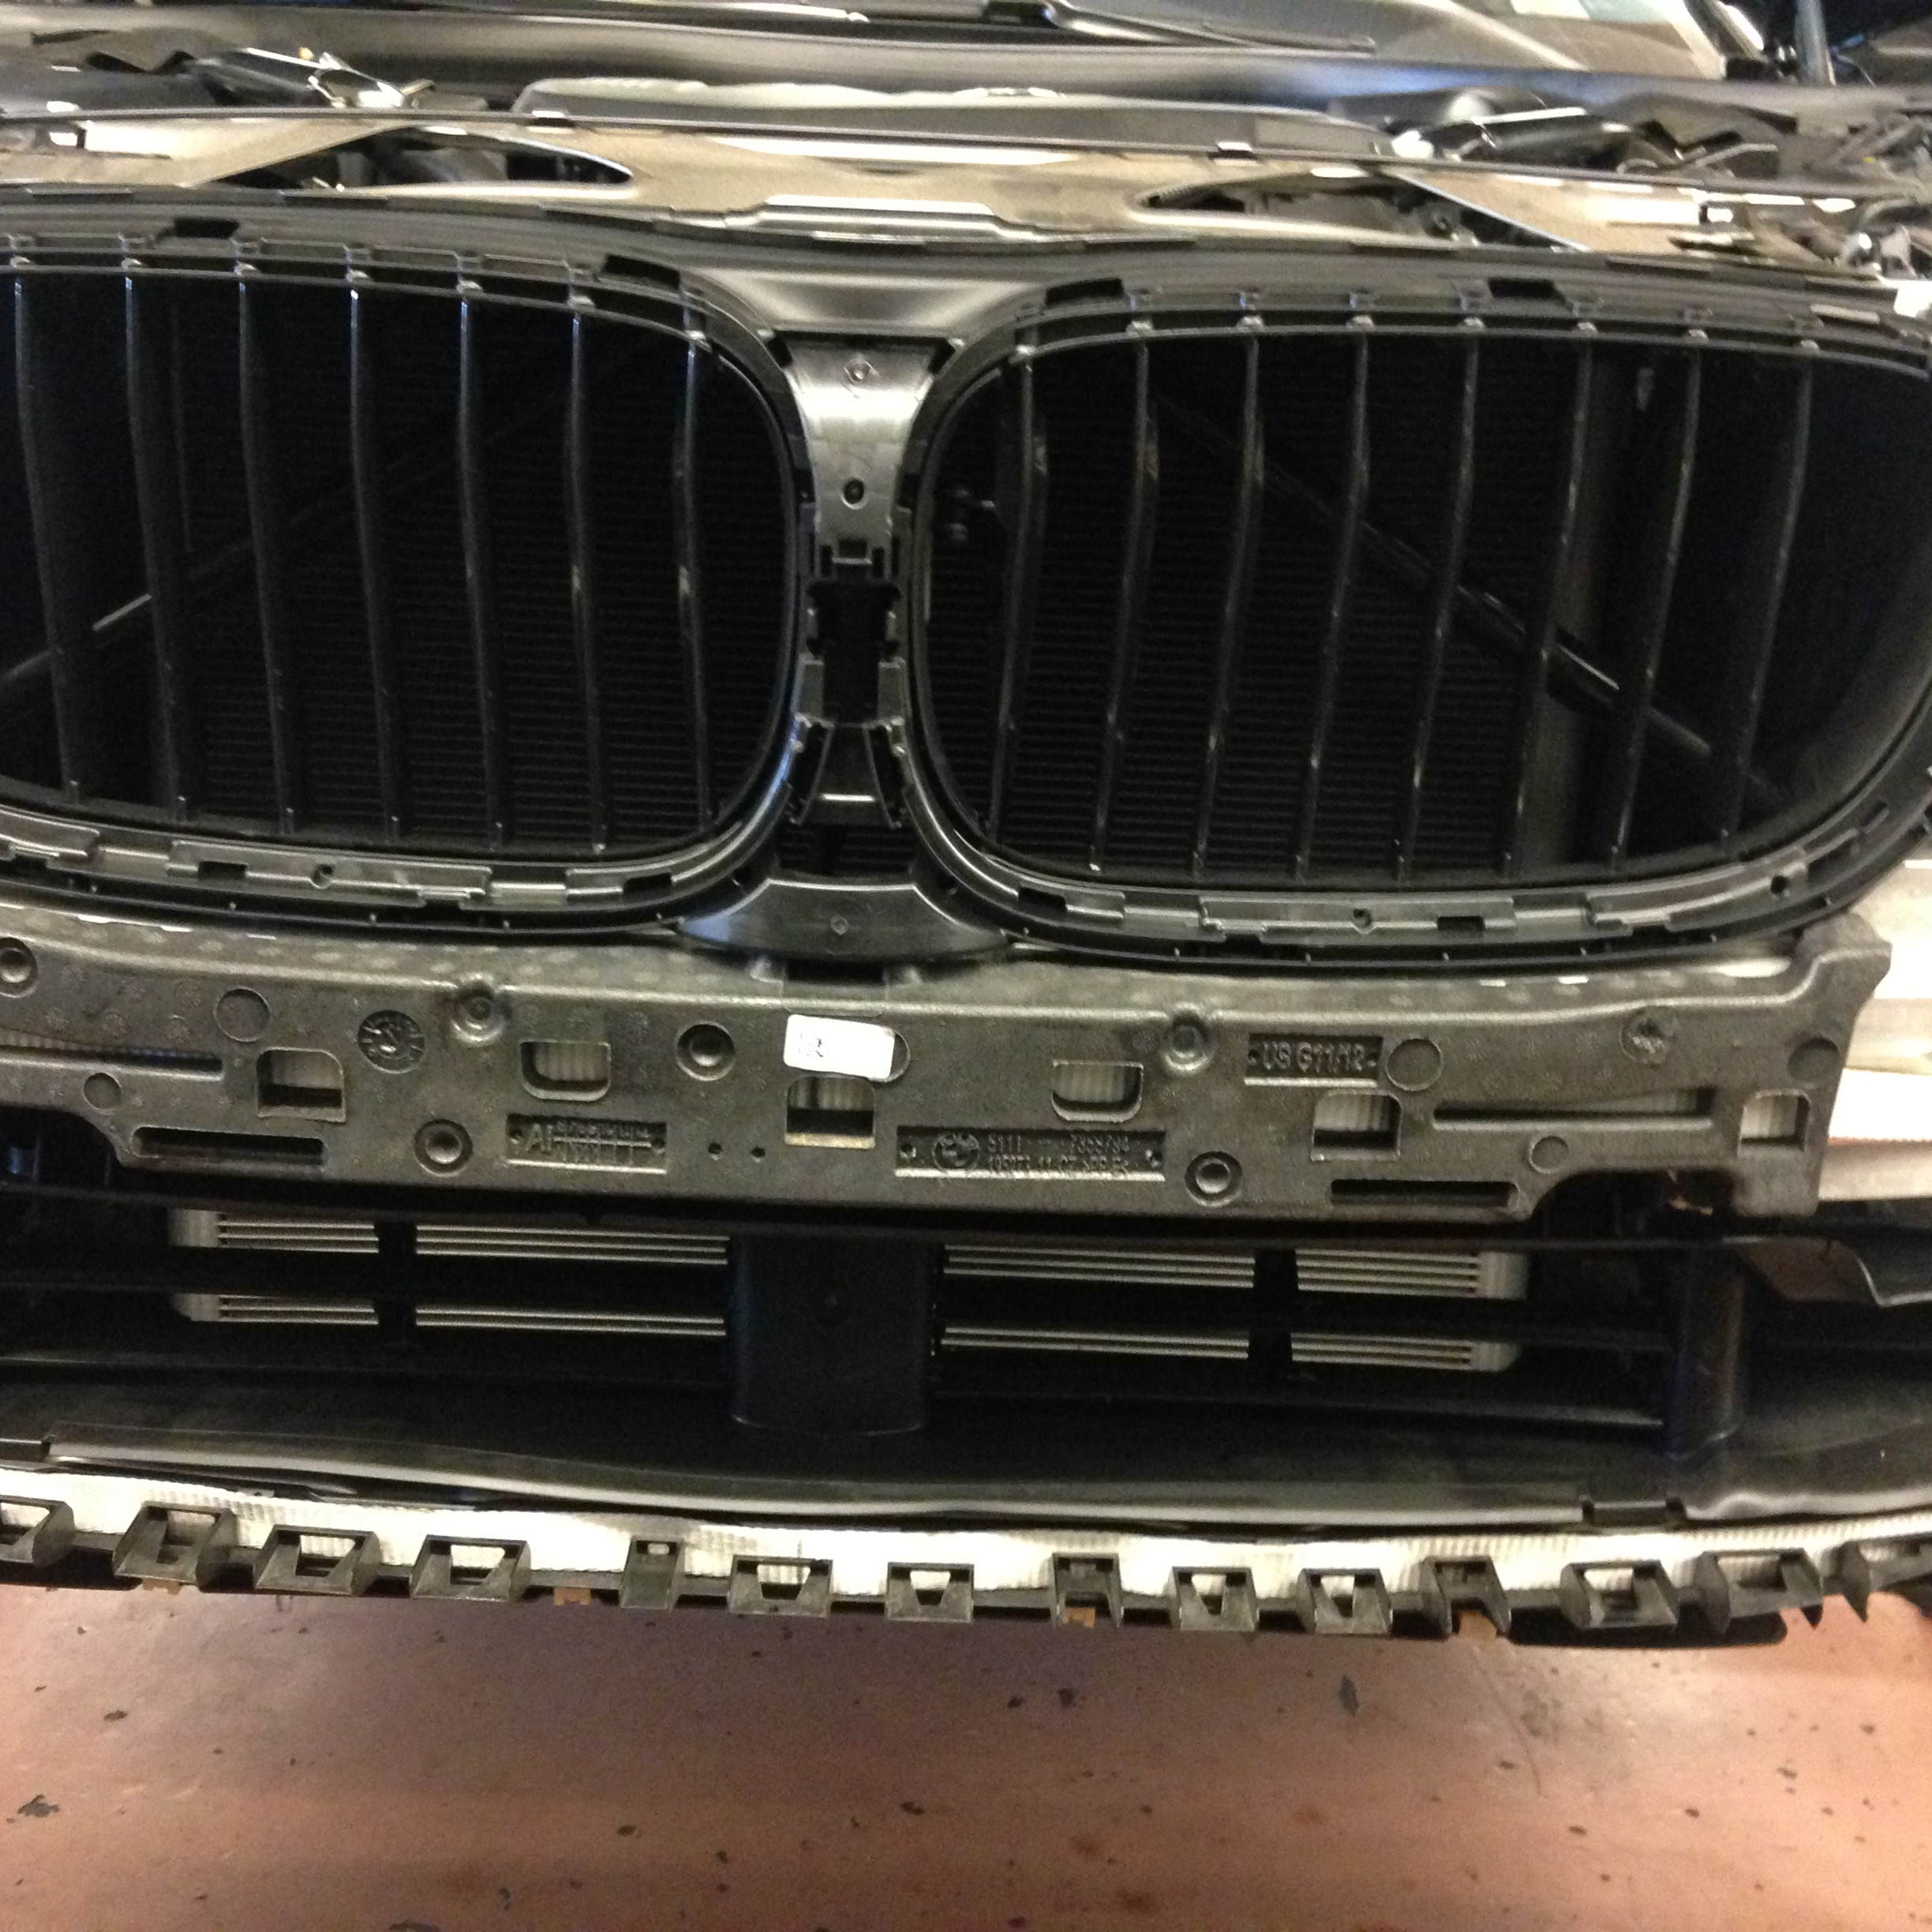 Design of a car radiator - I Know We Are Missing The Front Bumper And Kidney Grills I Already Removed Them On This G12 Car Came In With Check Engine Light Fault Was Radiator